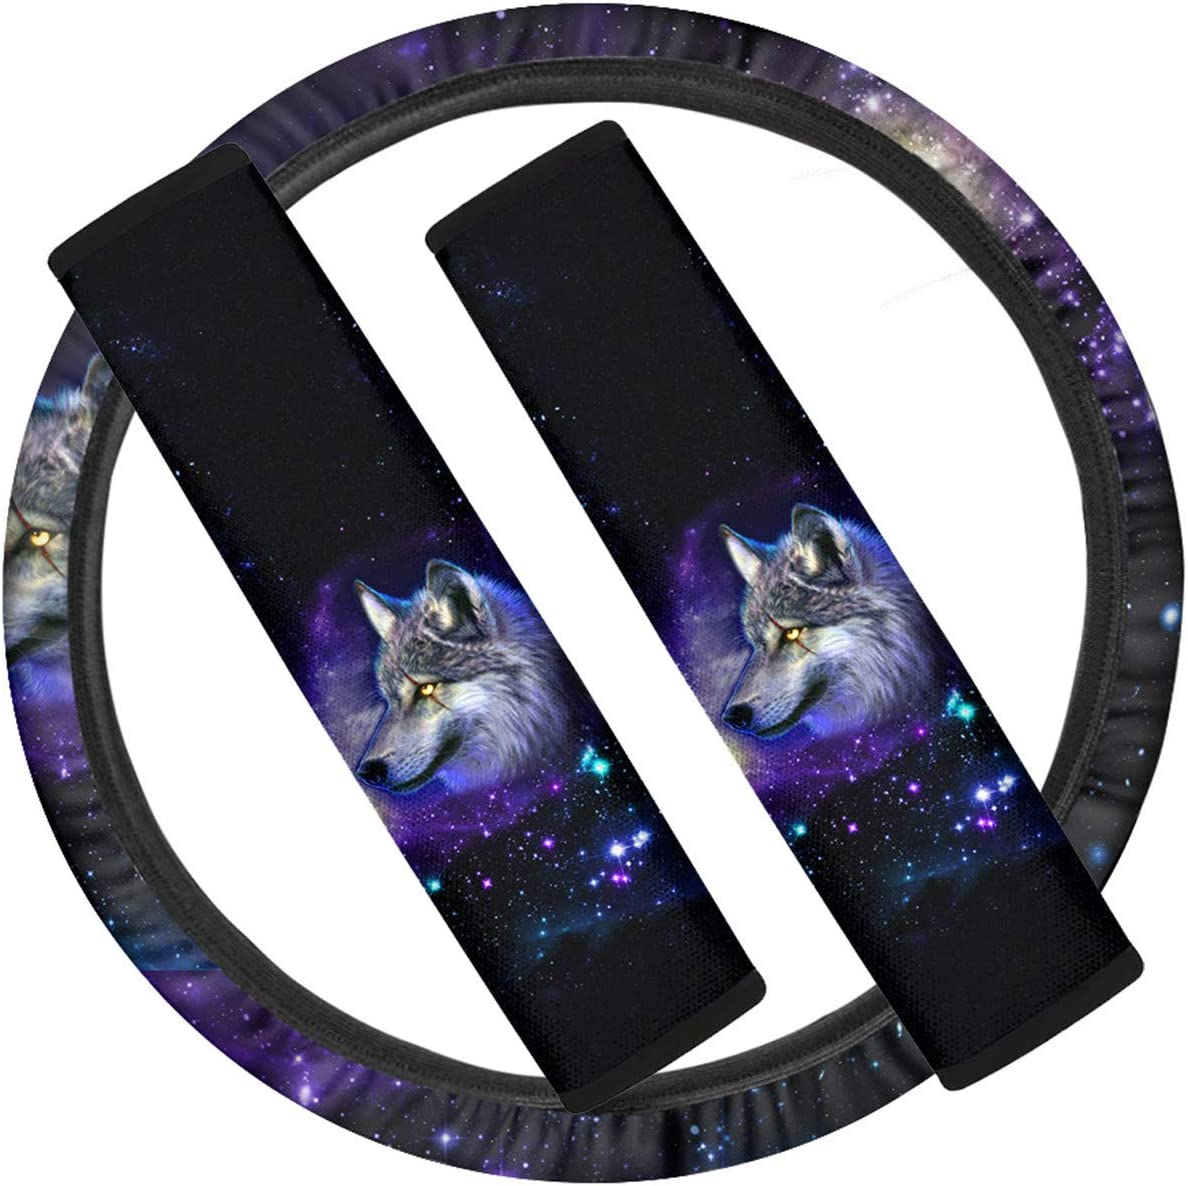 2 Pcs Safety Seat Belt Pads Automotive Wheel Wrap Protection Neoprene Stretch-on Shoulder Strap Pads Cover Black White Coloranimal Dogs Paws Print Universal Car Steering Wheel Accessories